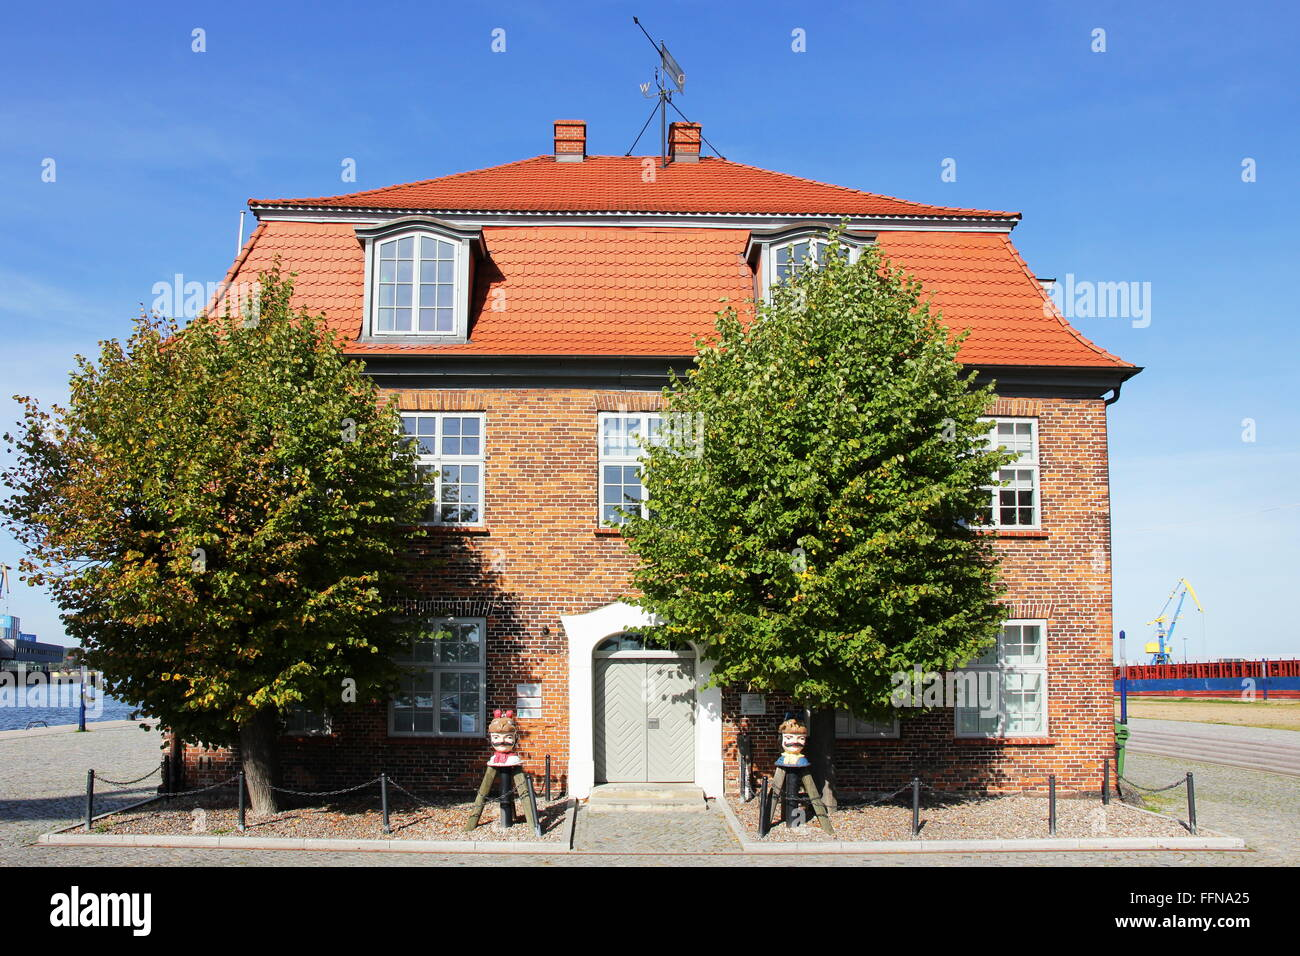 geography / travel, Germany,Mecklenburg-West Pomerania, Wismar, Am Hafen, Tree House, Additional-Rights-Clearance - Stock Image